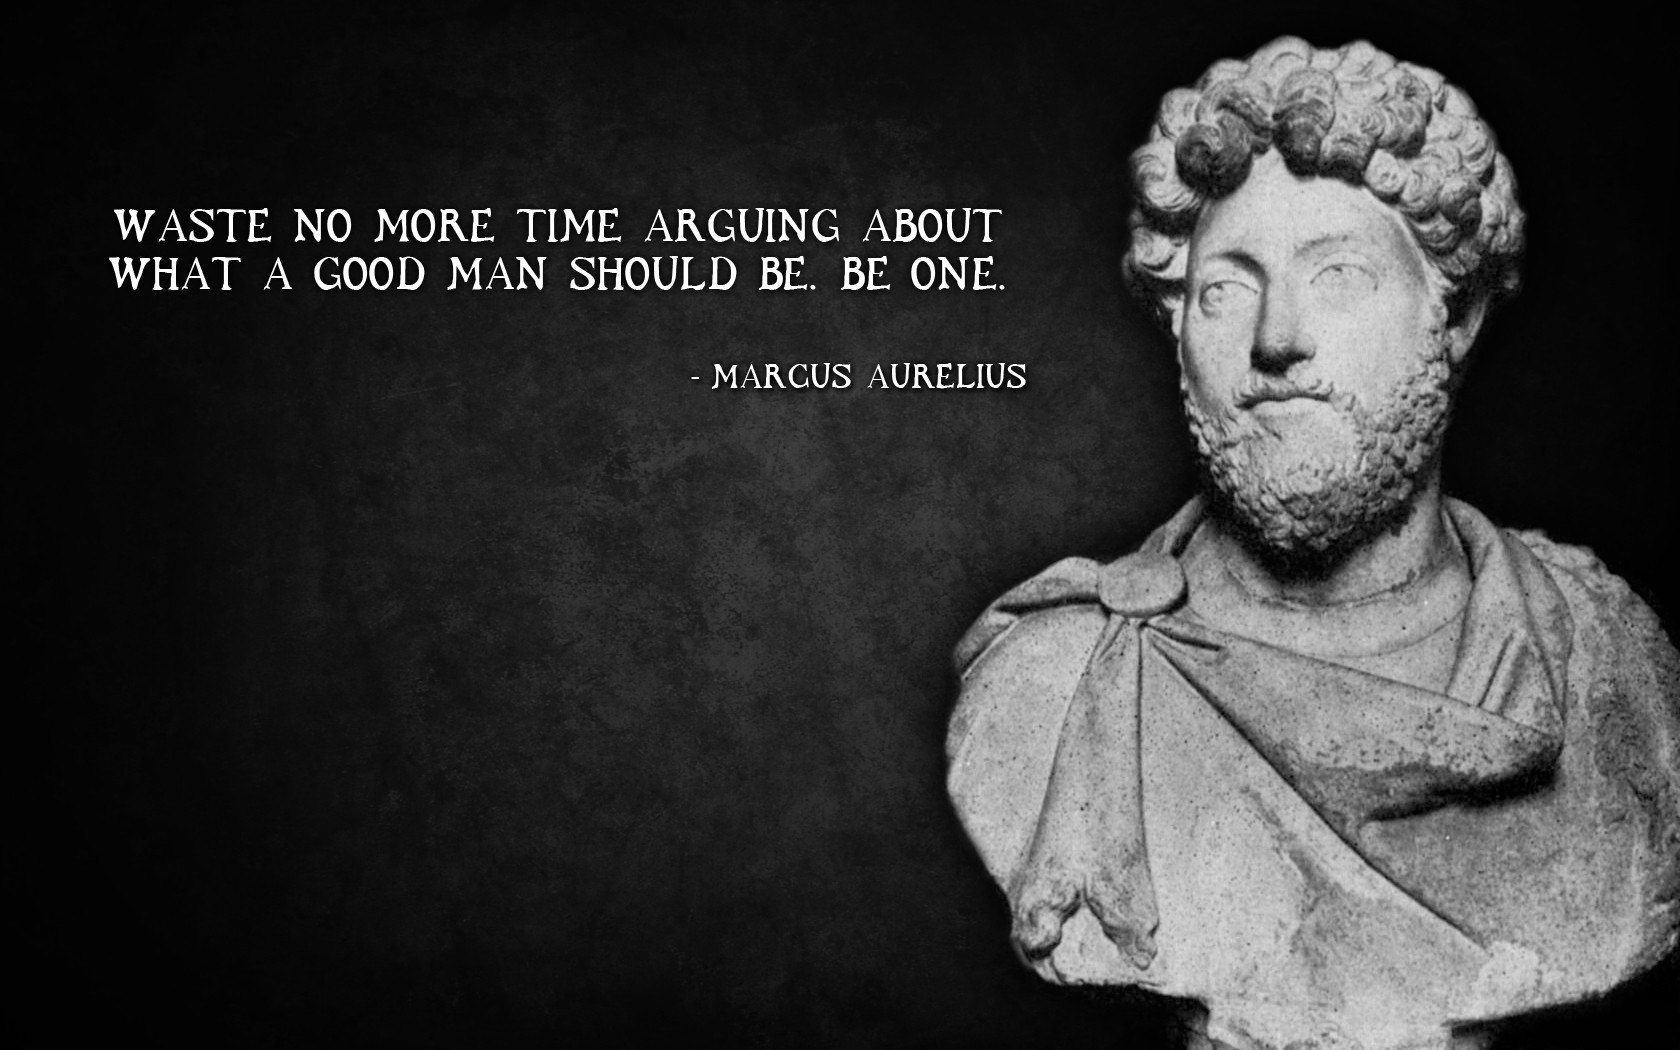 More Time No Marcus Waste Good Man About Be Should Arguing What Aurelius One Be